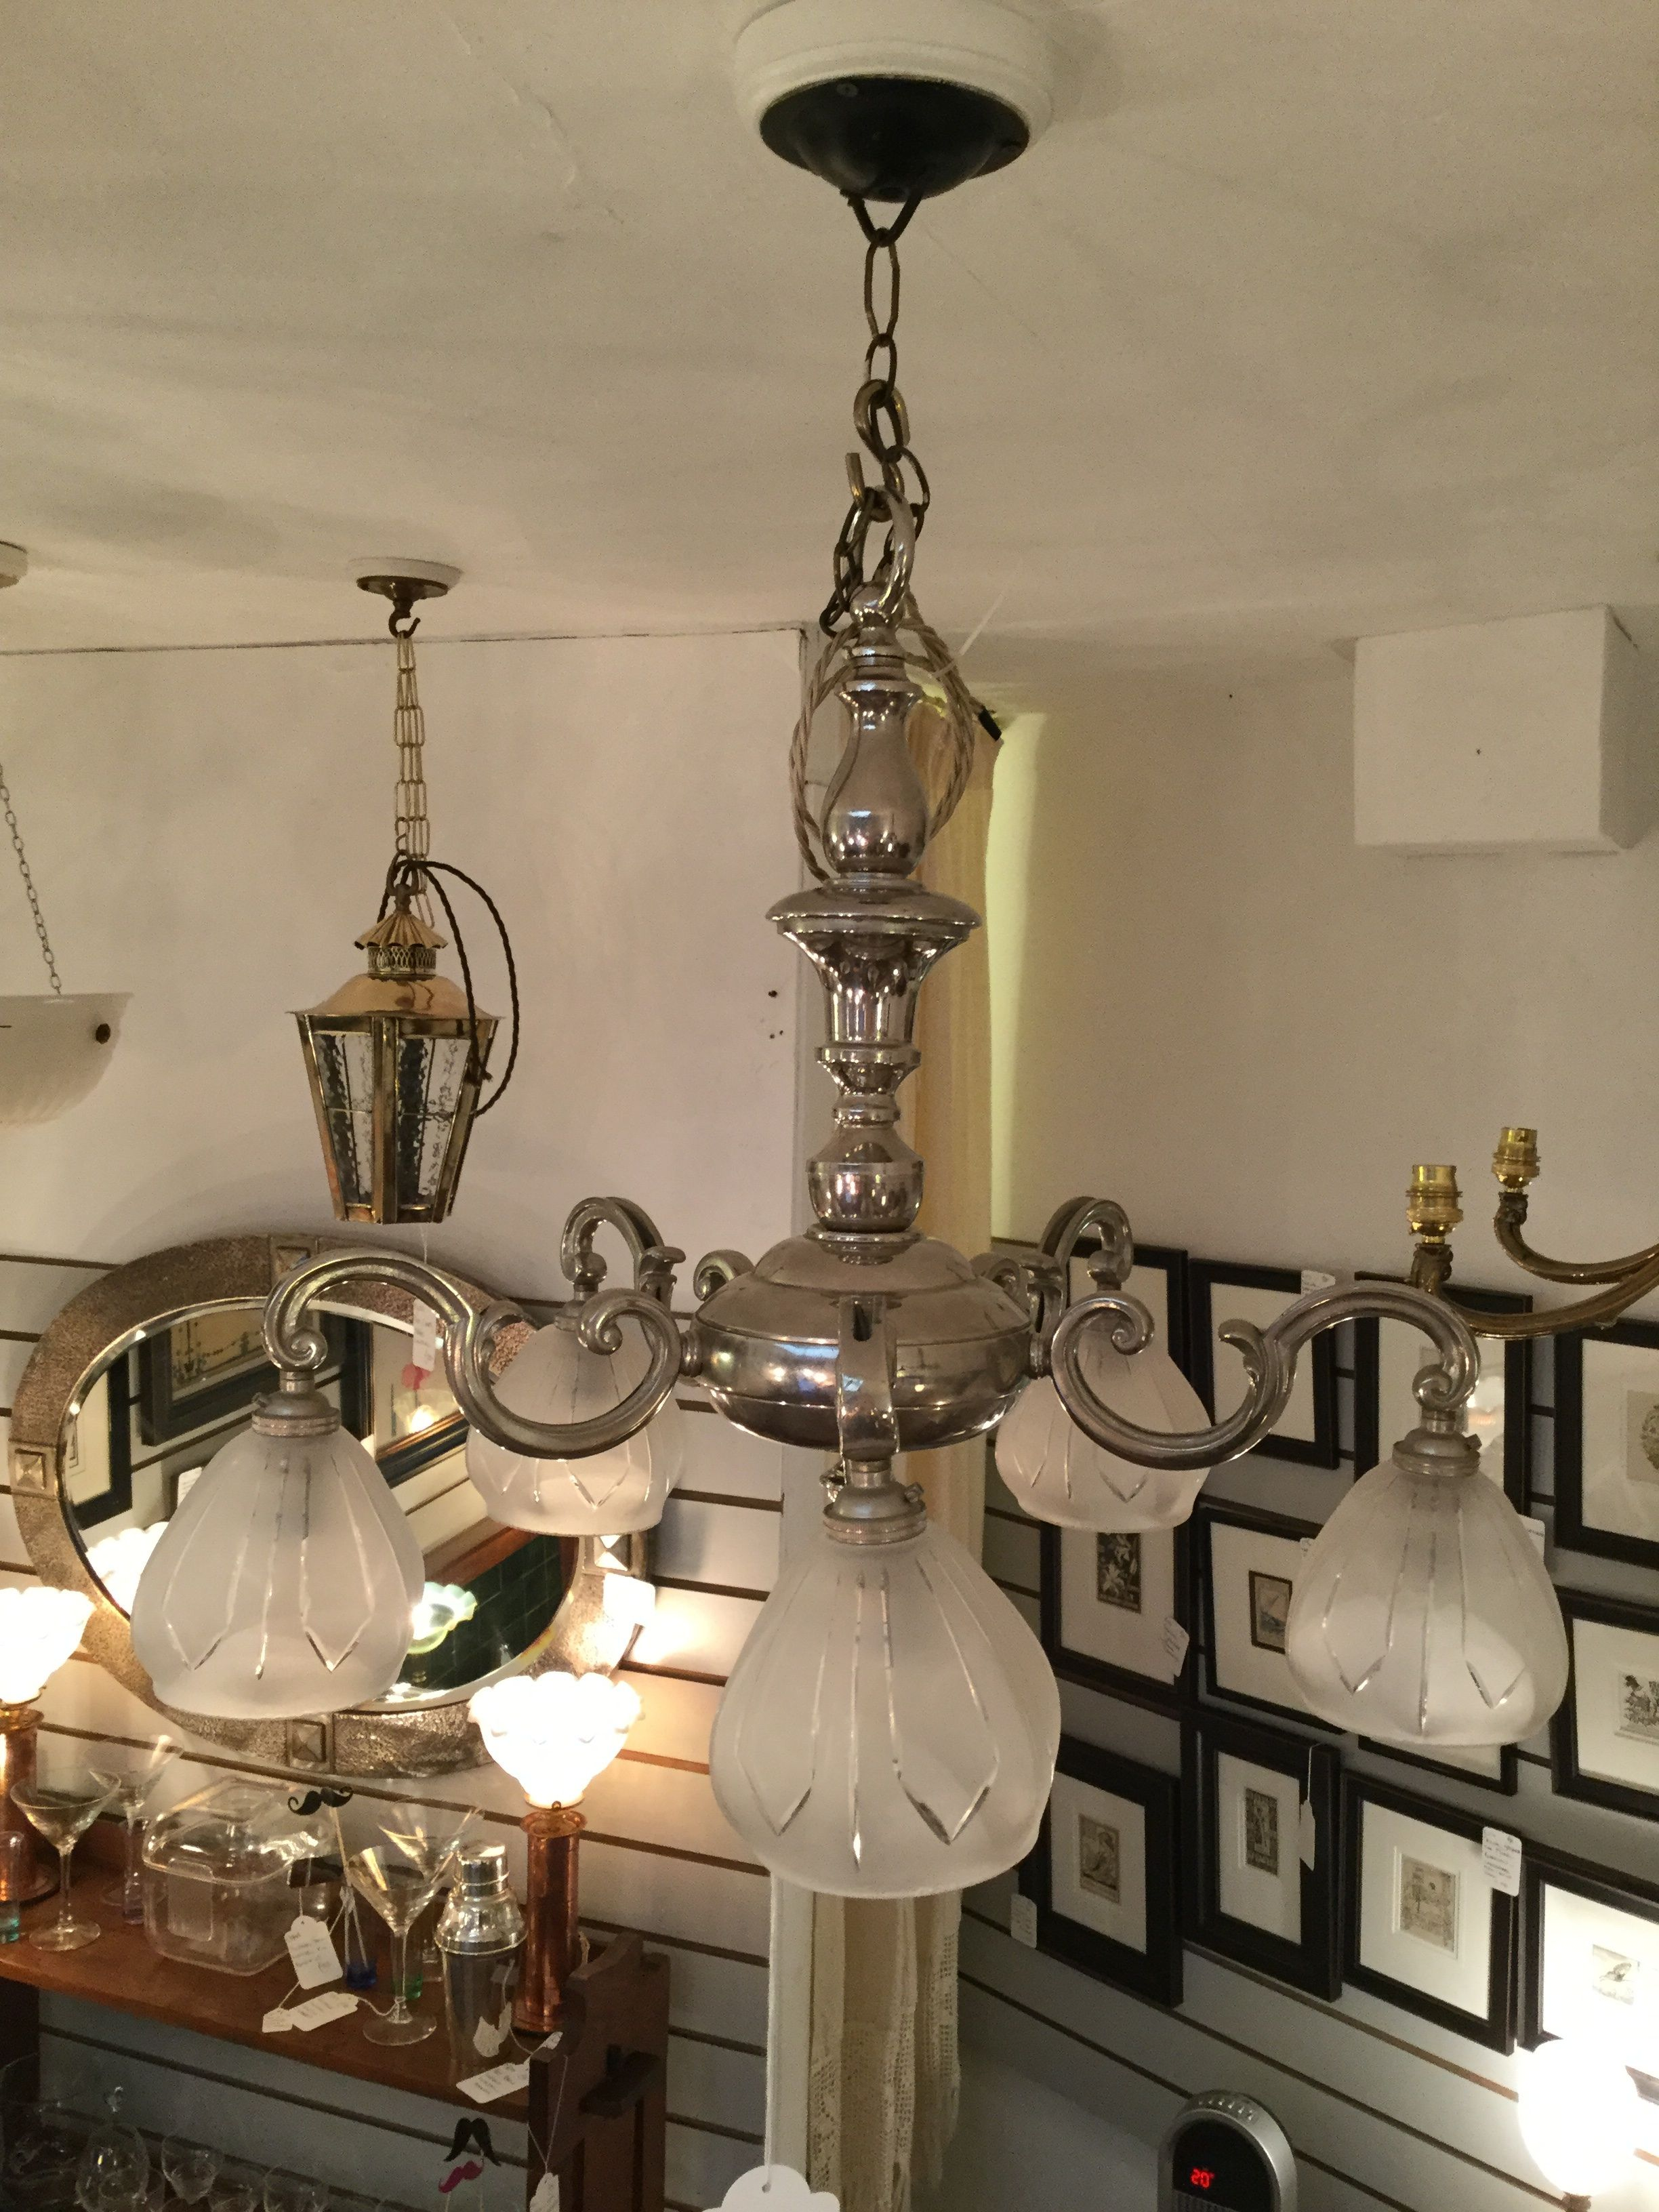 23+ Arts and crafts ceiling light fixtures ideas